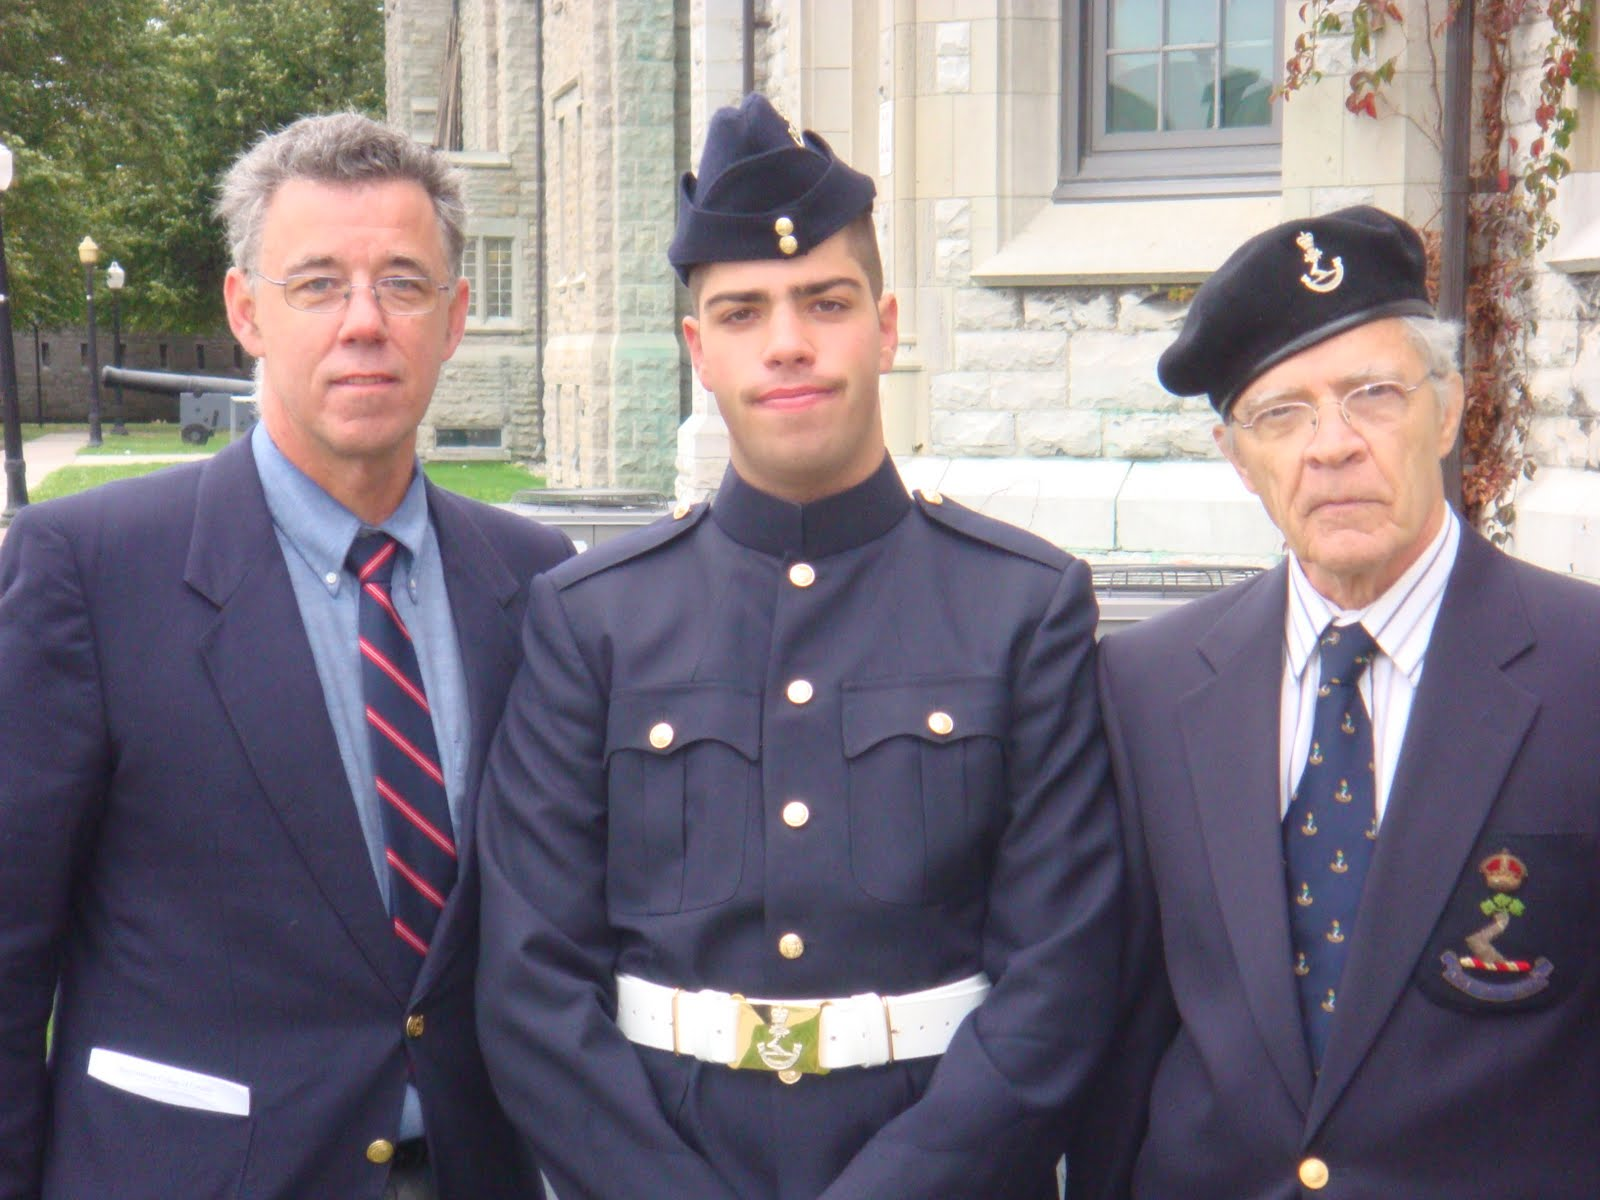 Me, my dad, and my grandfather